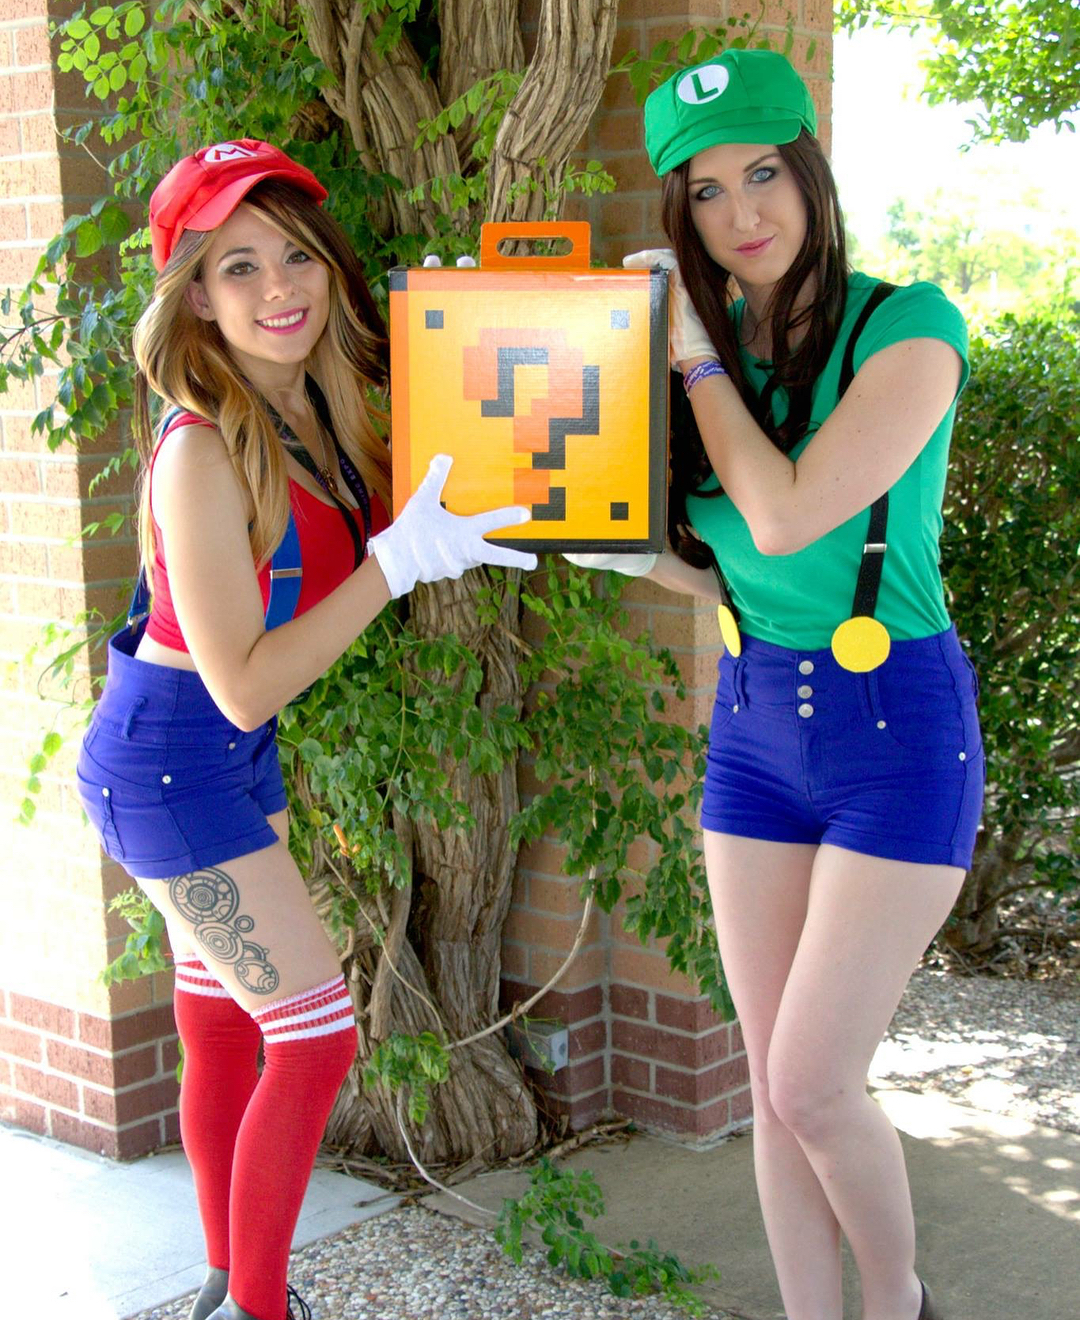 Super Mario & Luigi cosplay girls